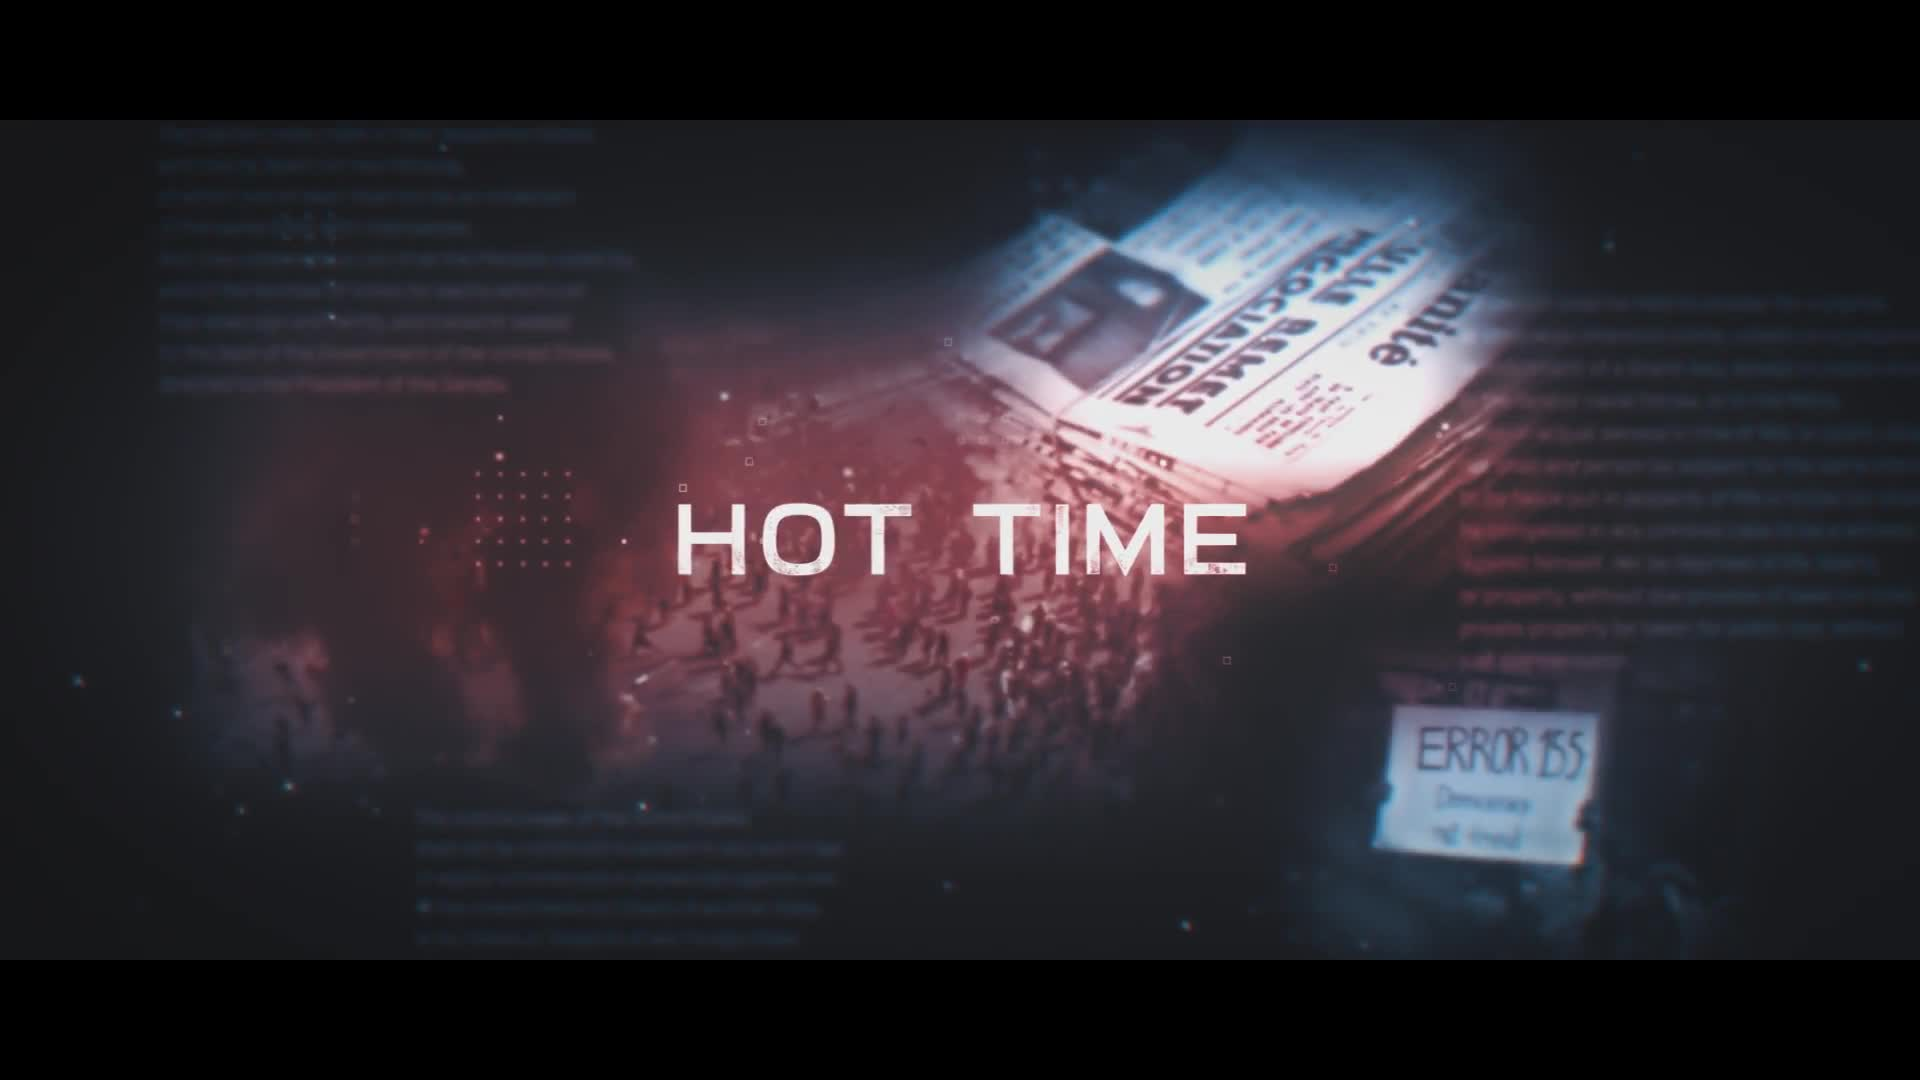 Hot Time - Download Videohive 22870273